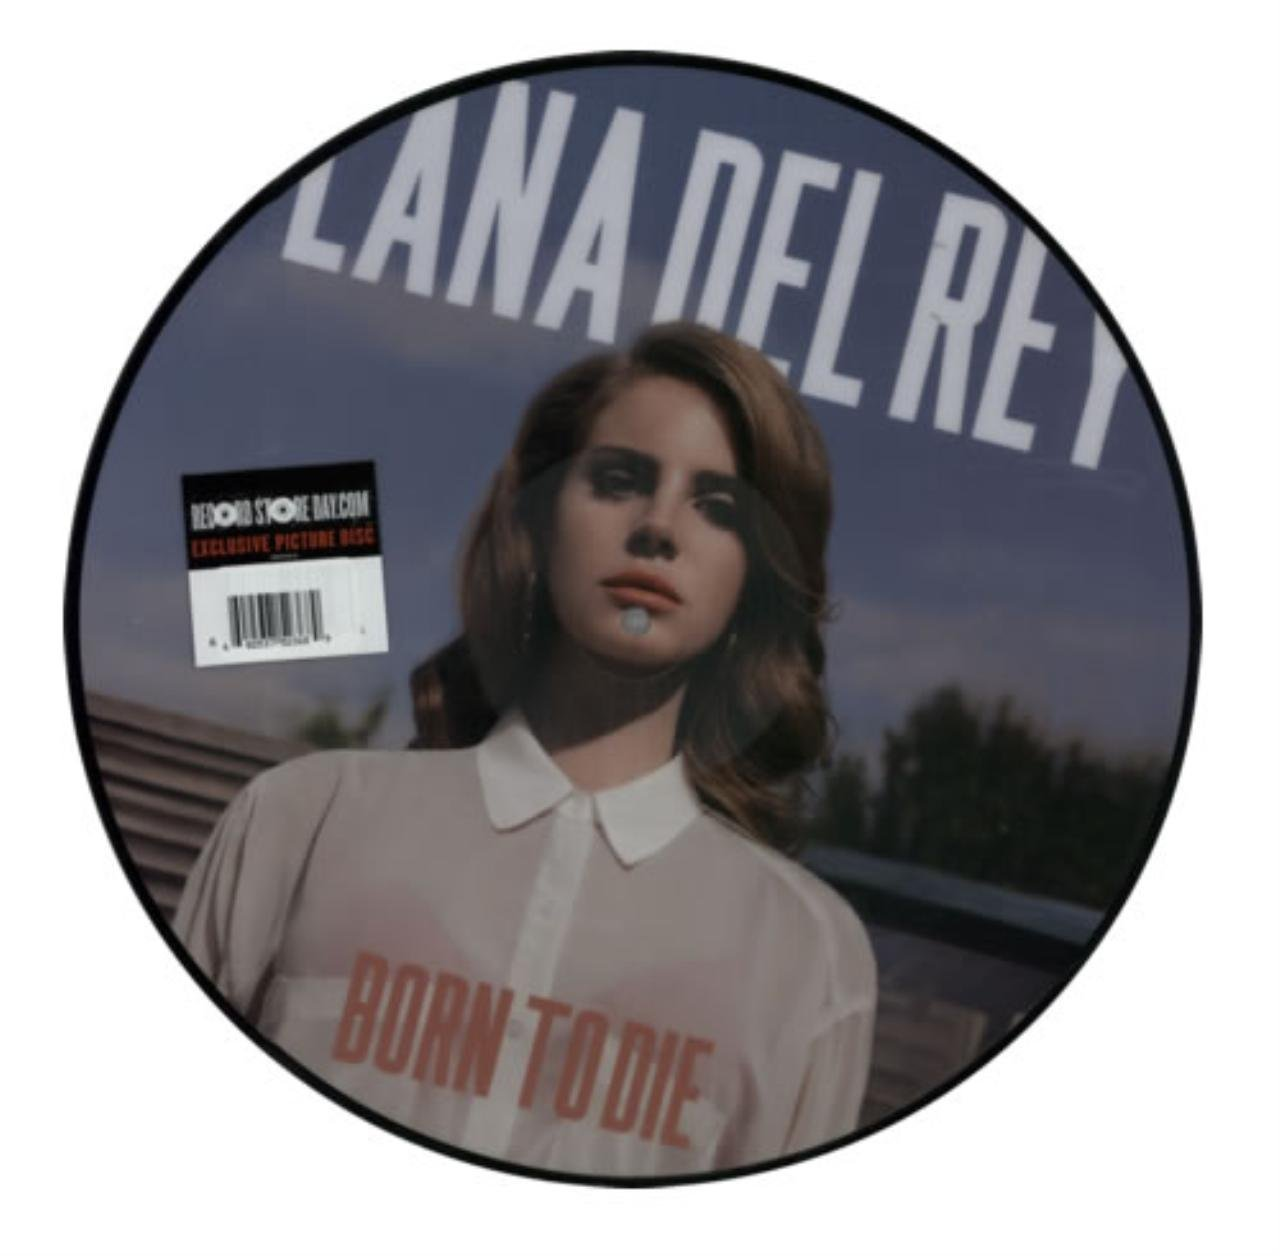 Lana Del Rey Born To Die Picture Disc Record Store Day Exclusive Release Amazon Com Music